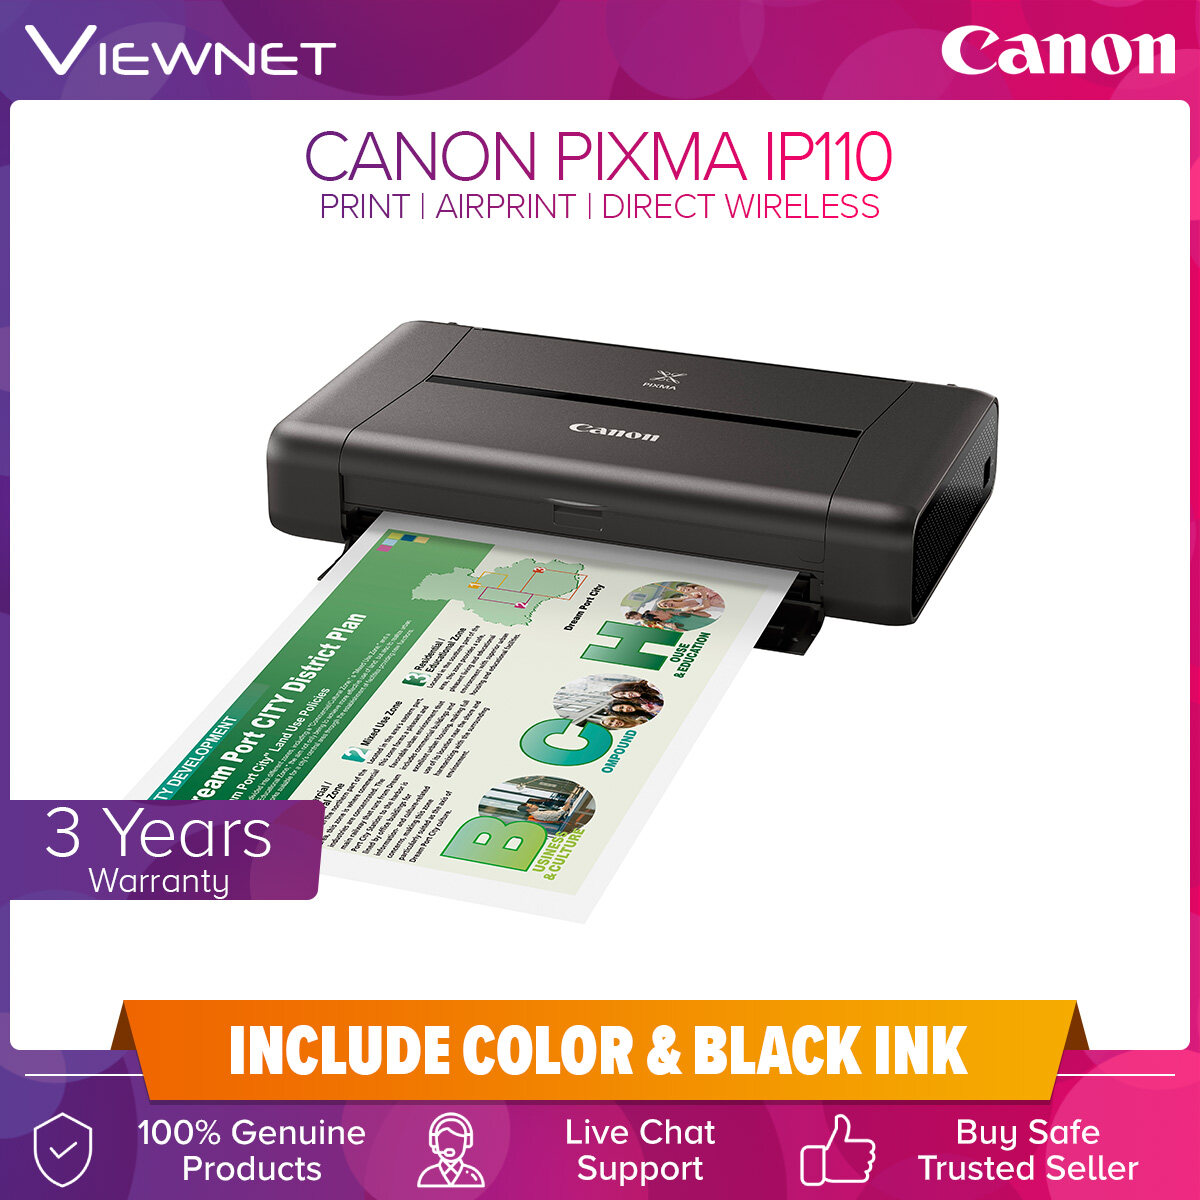 Canon PIXMA iP110 Portable Wireless Printer with Easy Direct Connection, Print, Wireless, Wireless PictBridge, Mopria, AirPrint, Direct Wireless